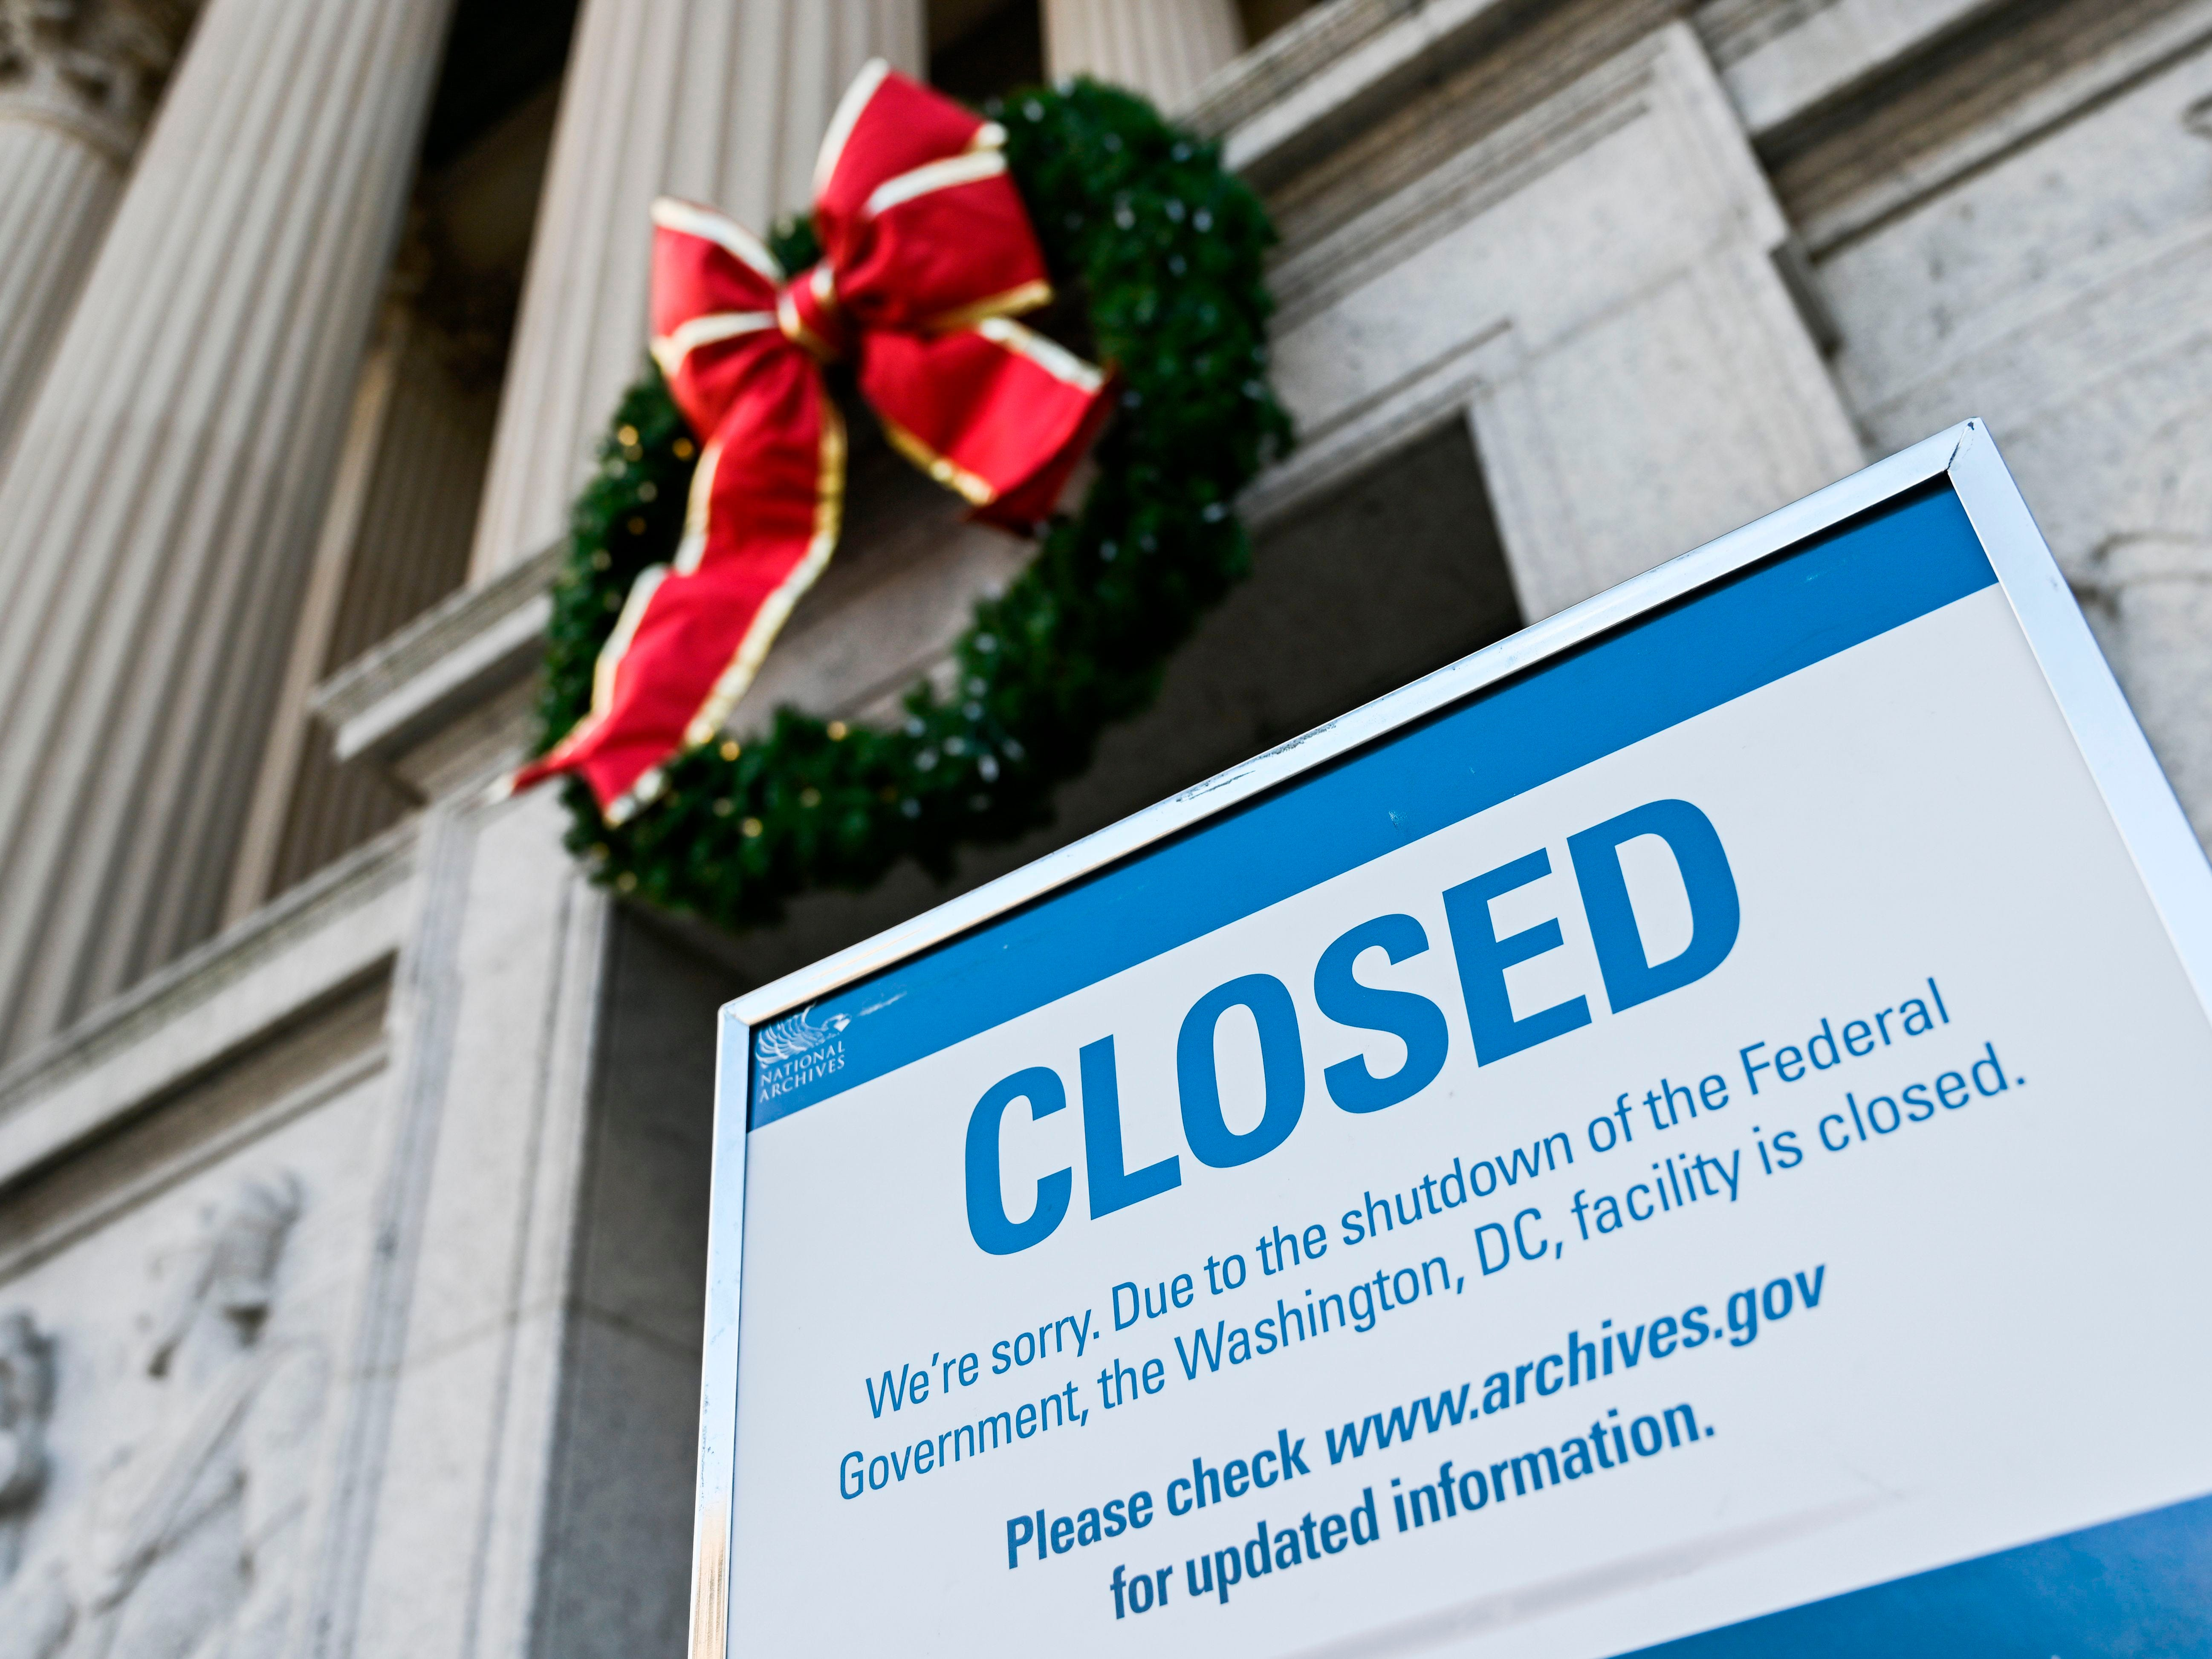 A sign is displayed at the National Archives building that is closed because of a US government shutdown in Washington, DC, on December 22, 2018. - The partial US government shutdown is set to stretch on through Christmas as the Senate adjourned with no deal to end it in sight.